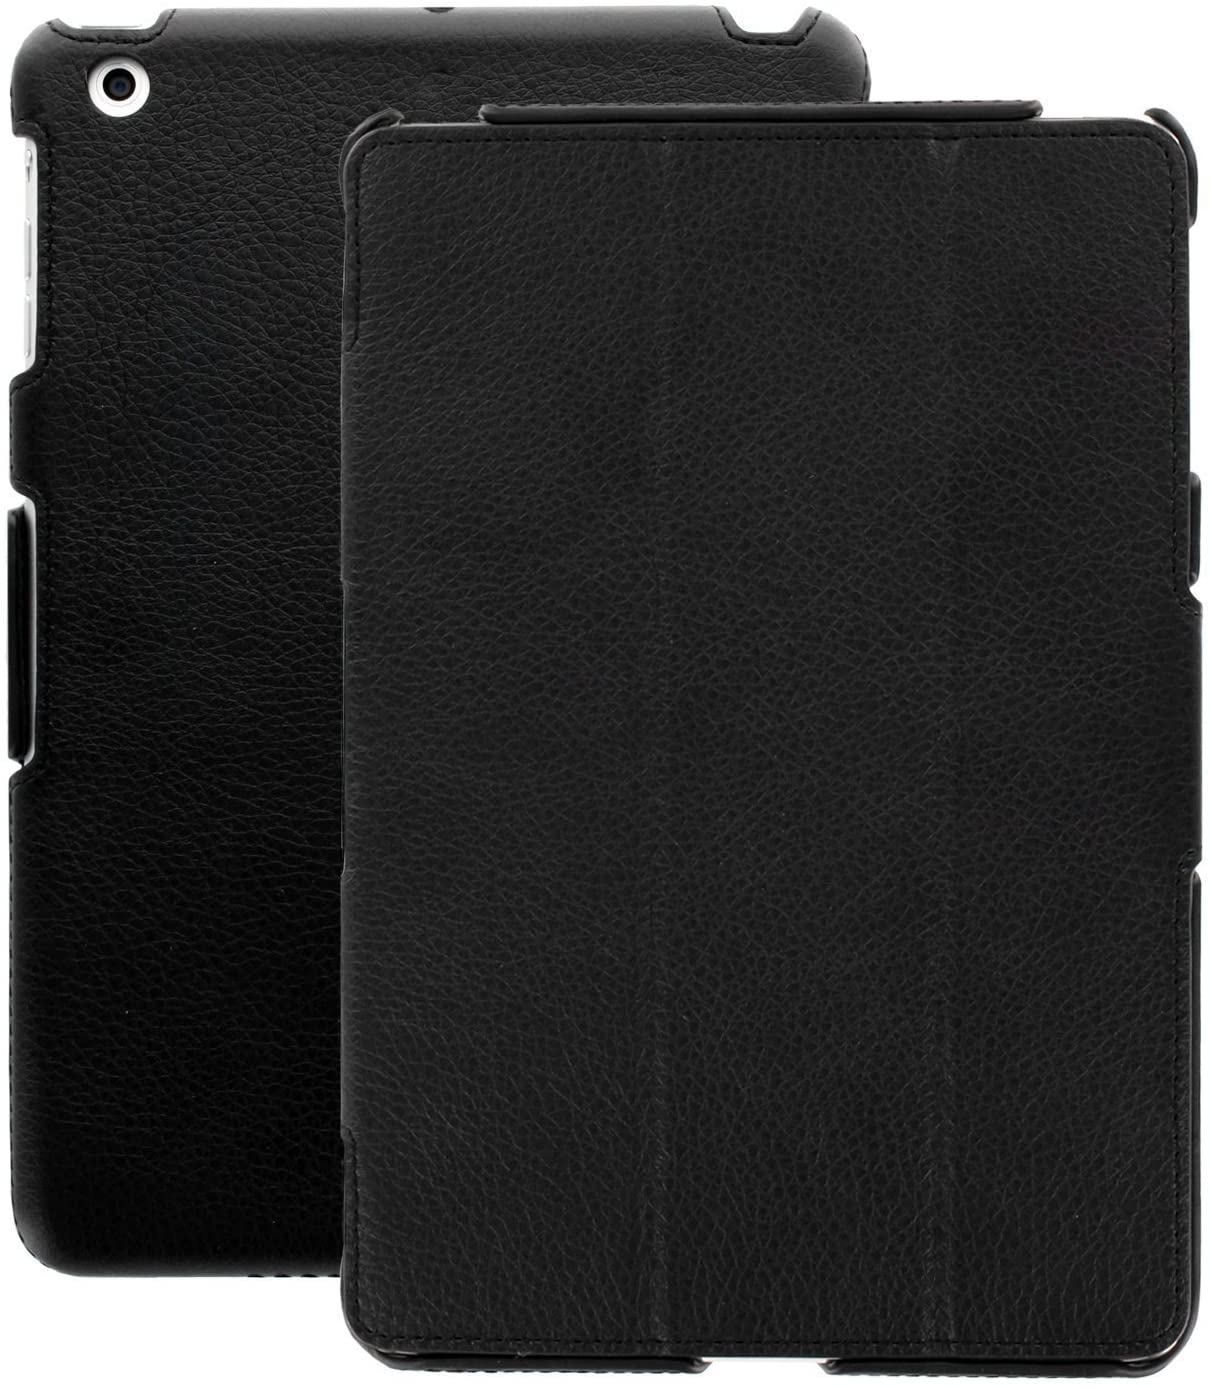 iPad Air 2 - Black PU Leather Executive Cover with Rubberized Back and Smart Feature